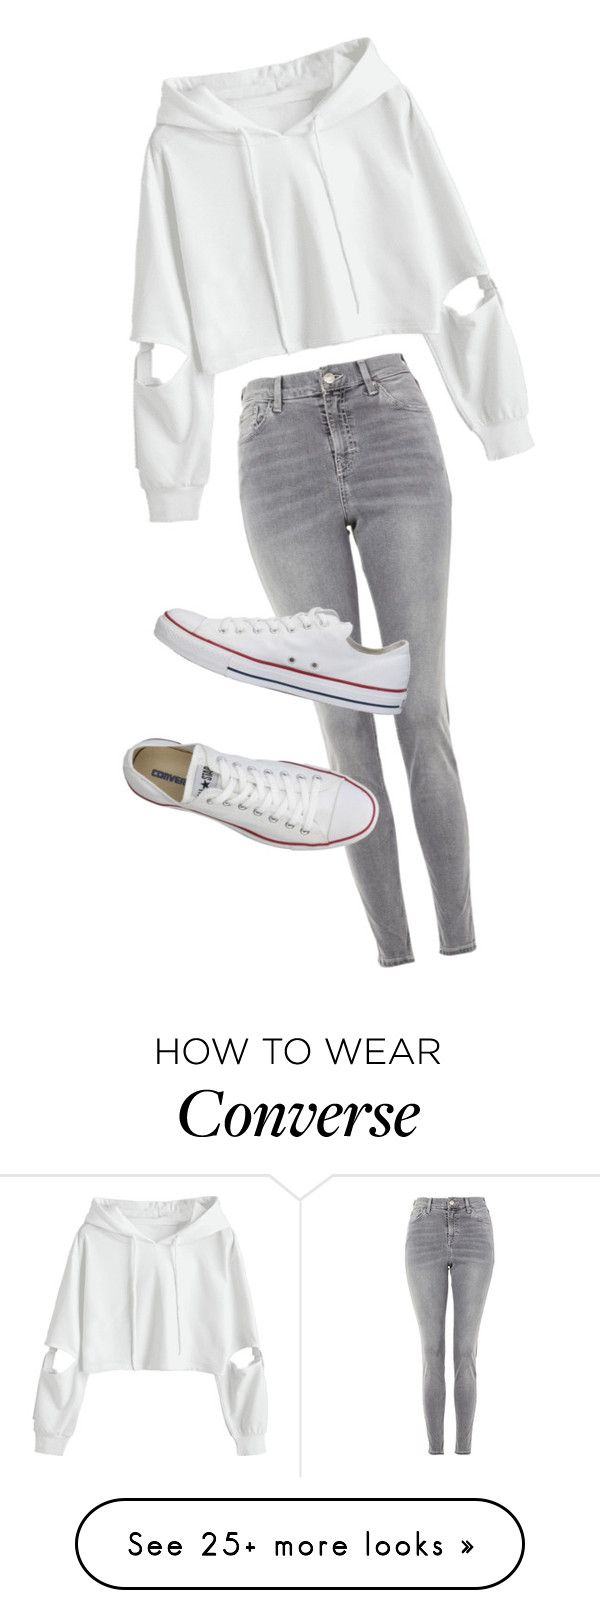 """Cute Autumn Look"" by hayleydalton on Polyvore featuring Topshop, Converse, cute and autumn"